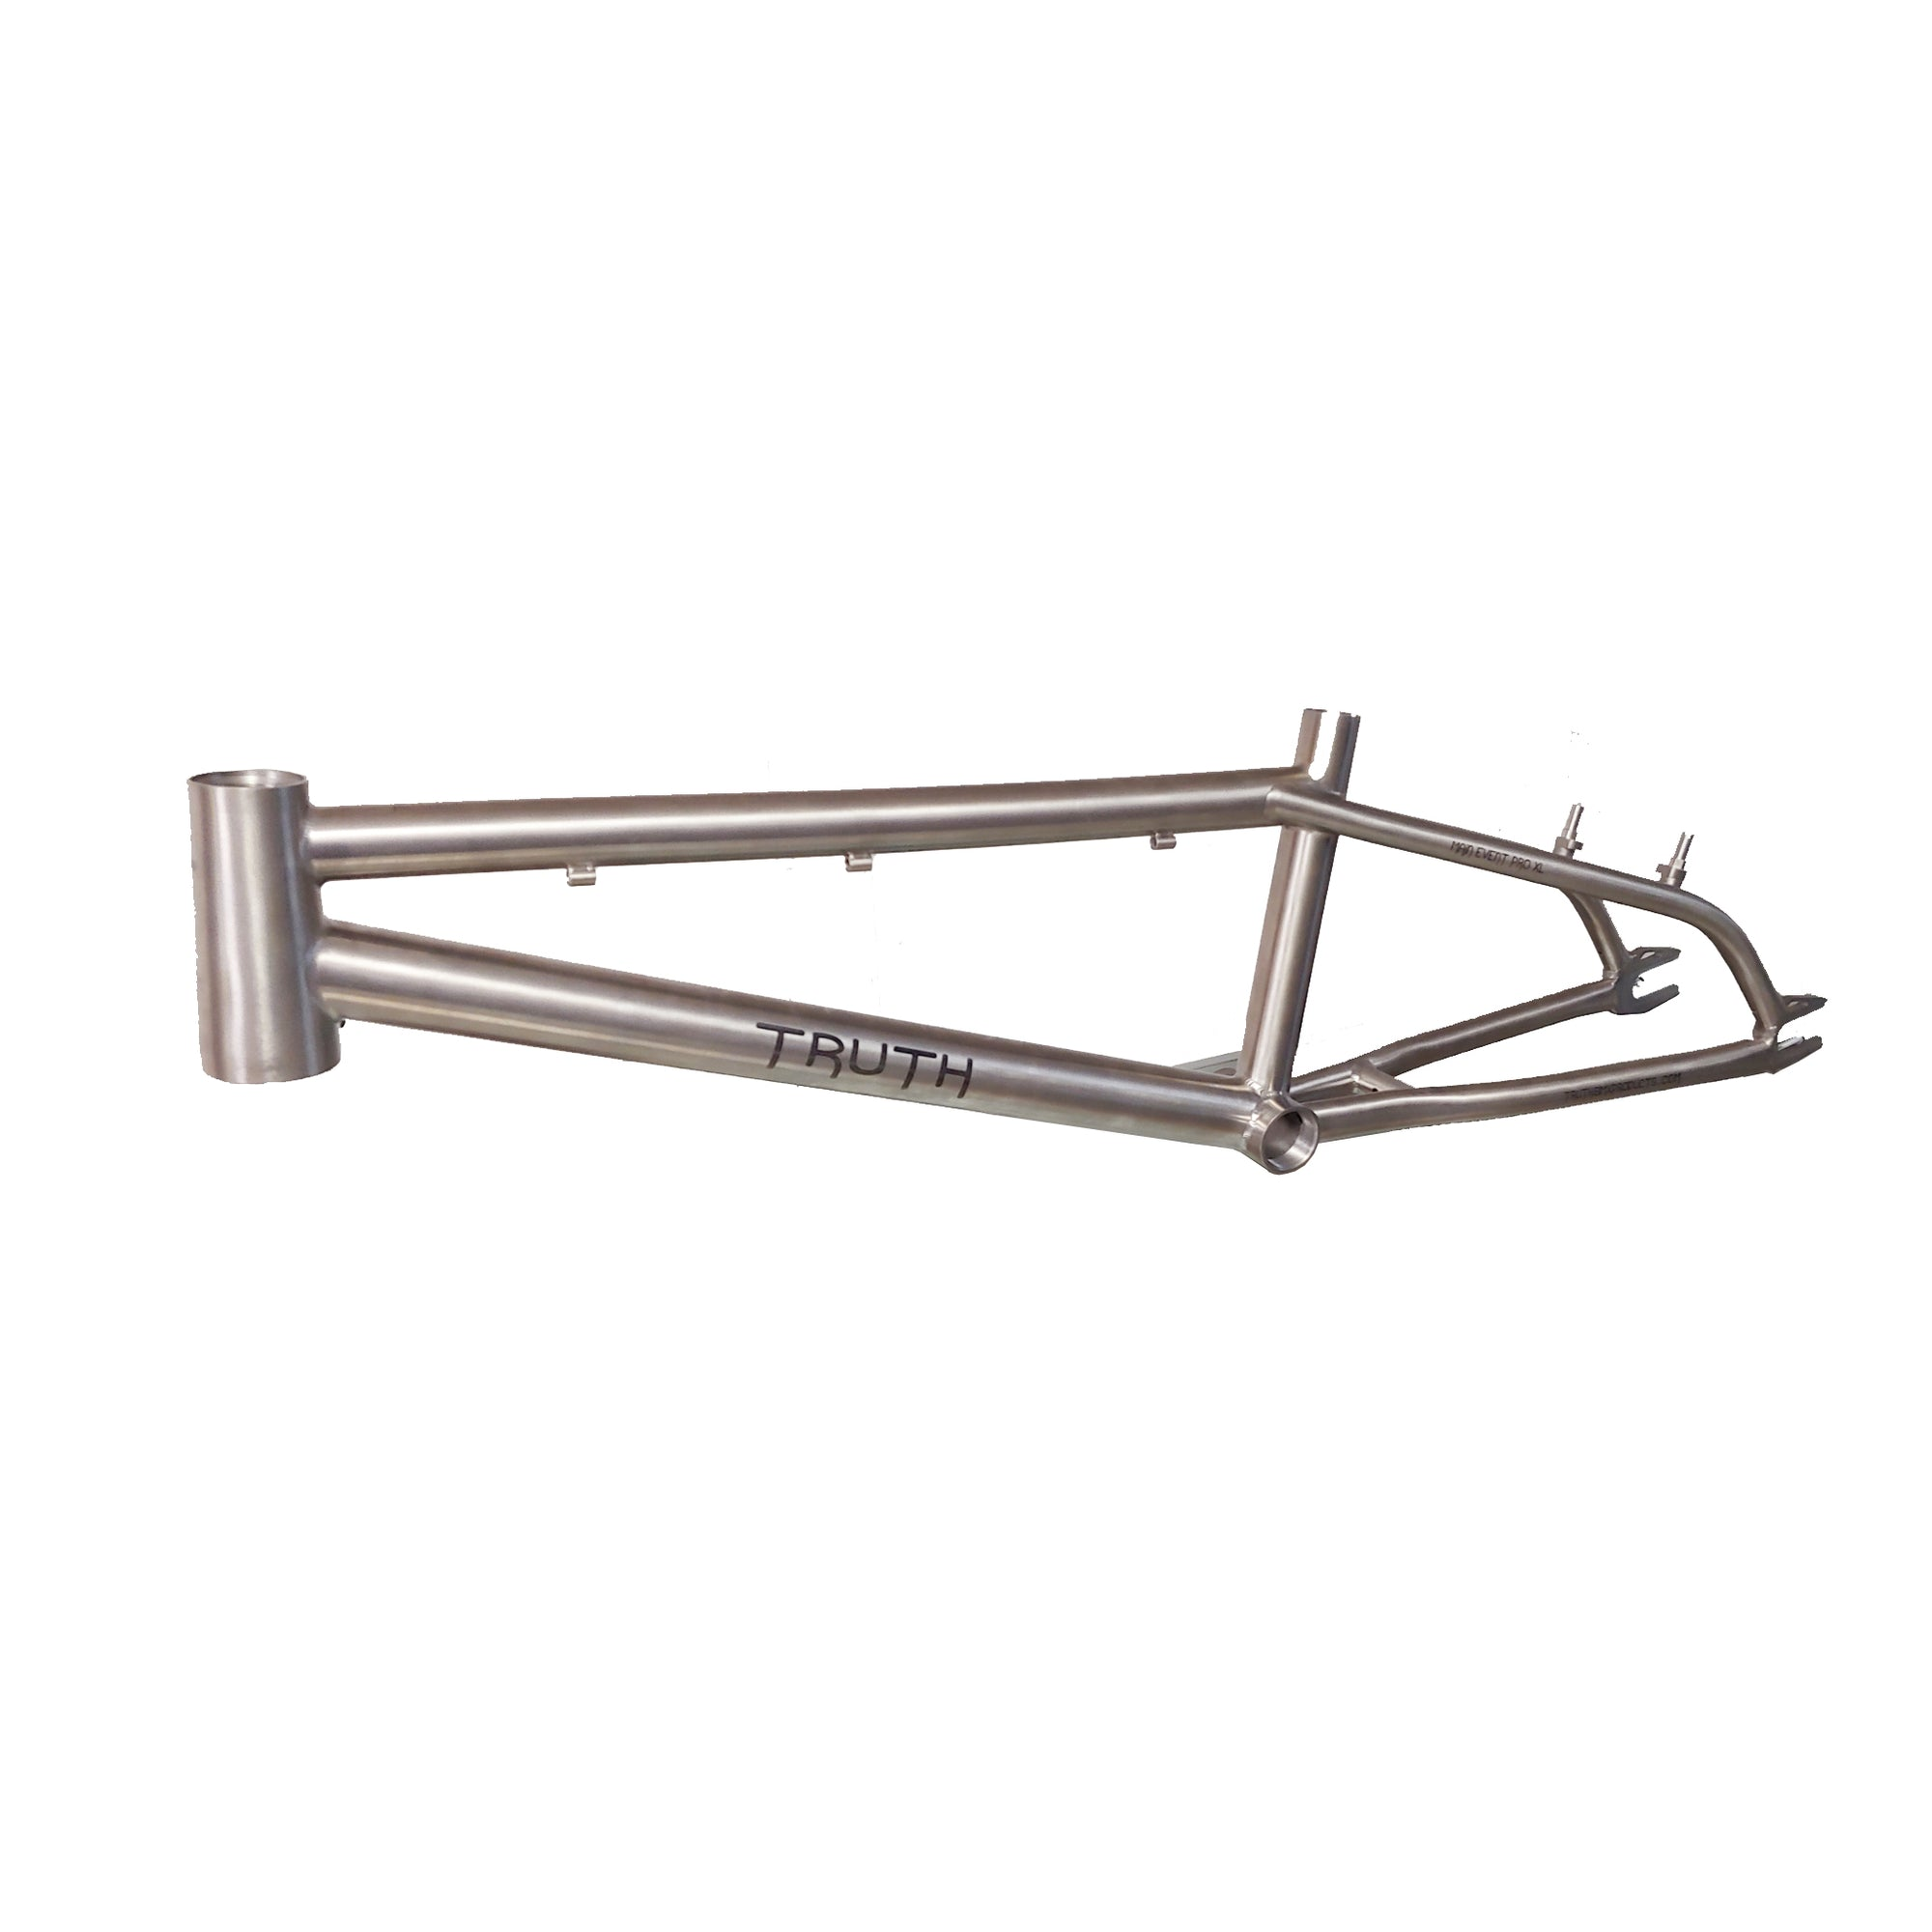 "TRUTH 20"" TITANIUM MAIN EVENT BMX RACE FRAME"